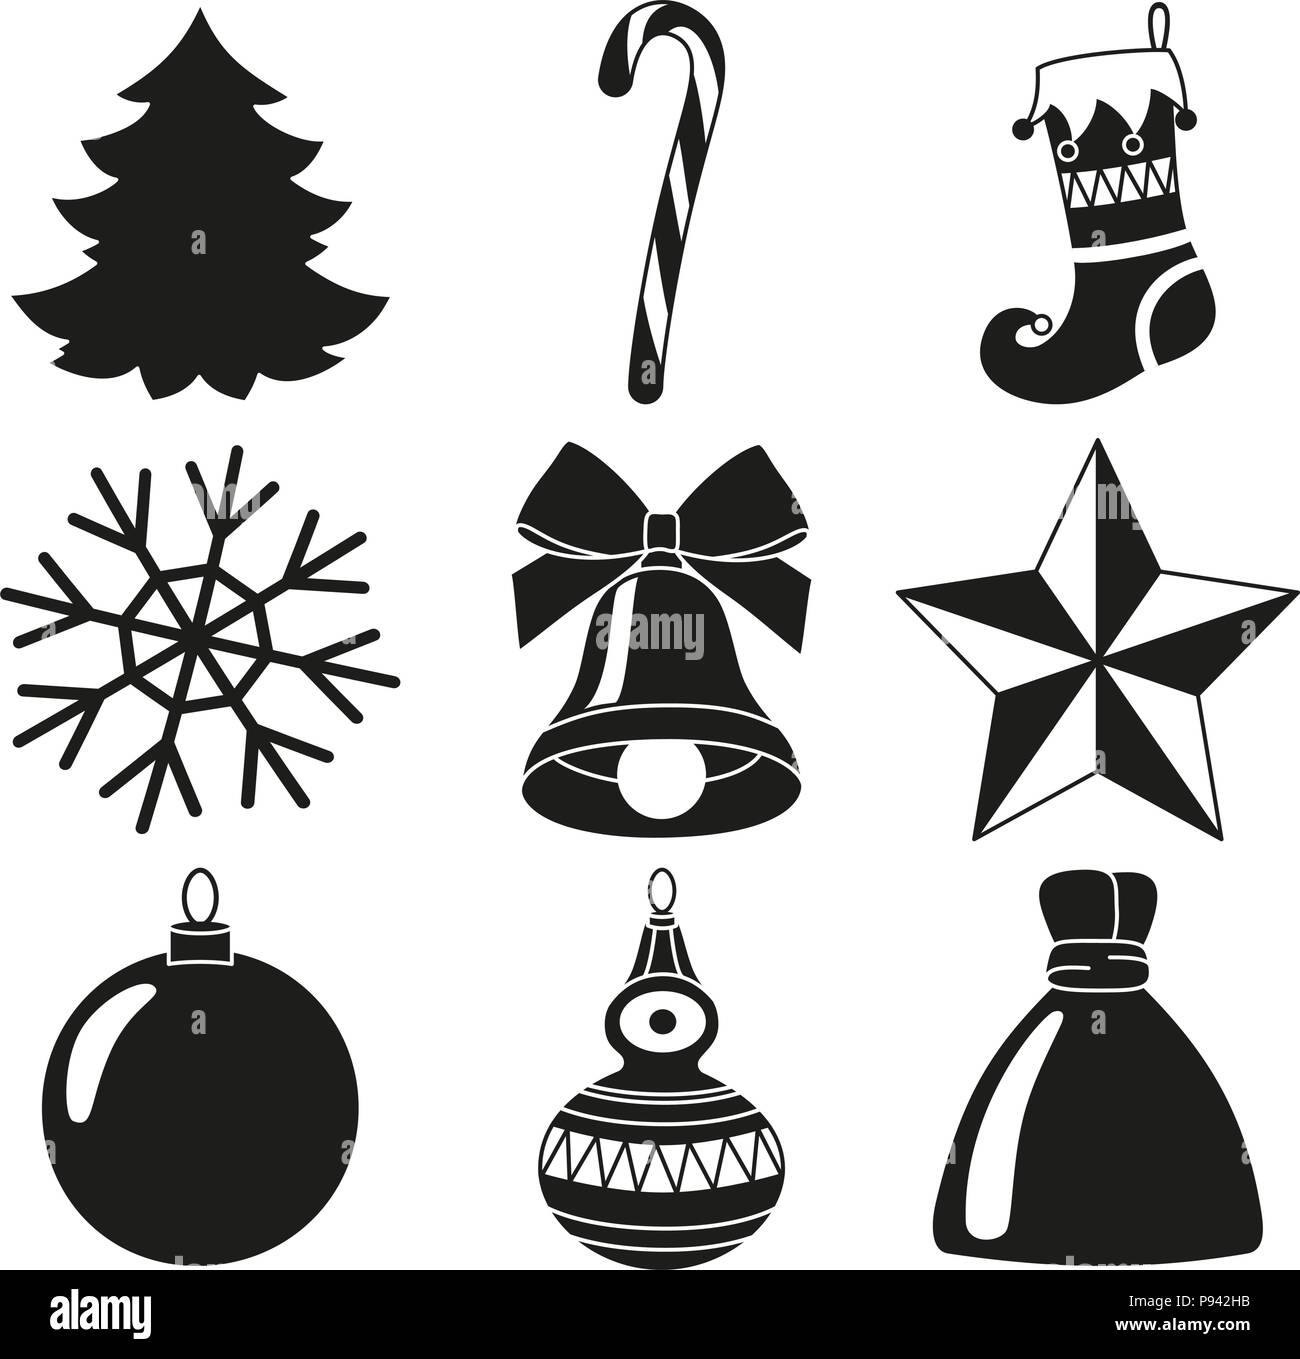 black and white 9 xmas elements silhouette set new year holiday decorations vector illustration for icon logo sticker patch label badge emblem